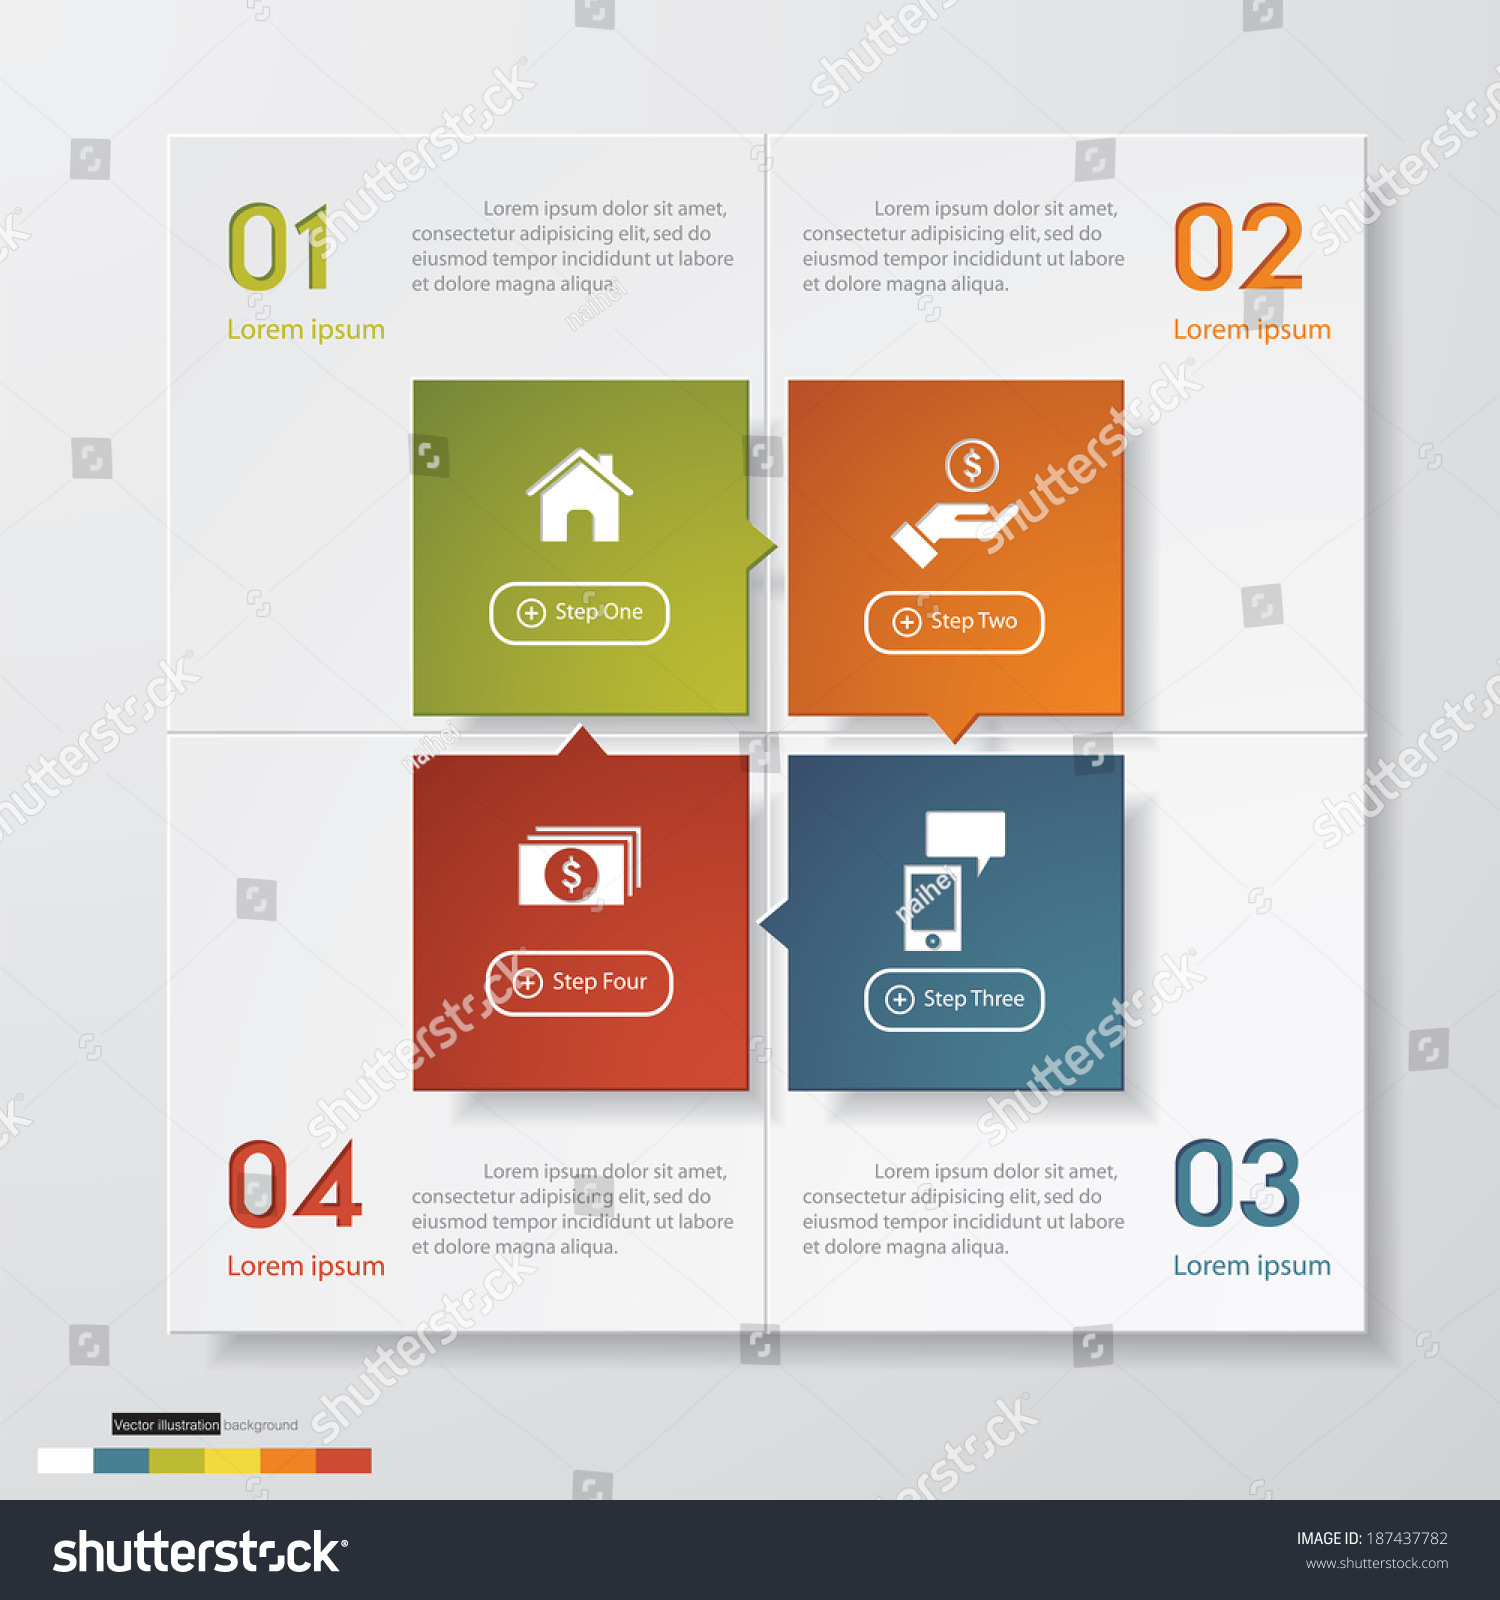 Design clean number banners templategraphic website stock for Blueprint number